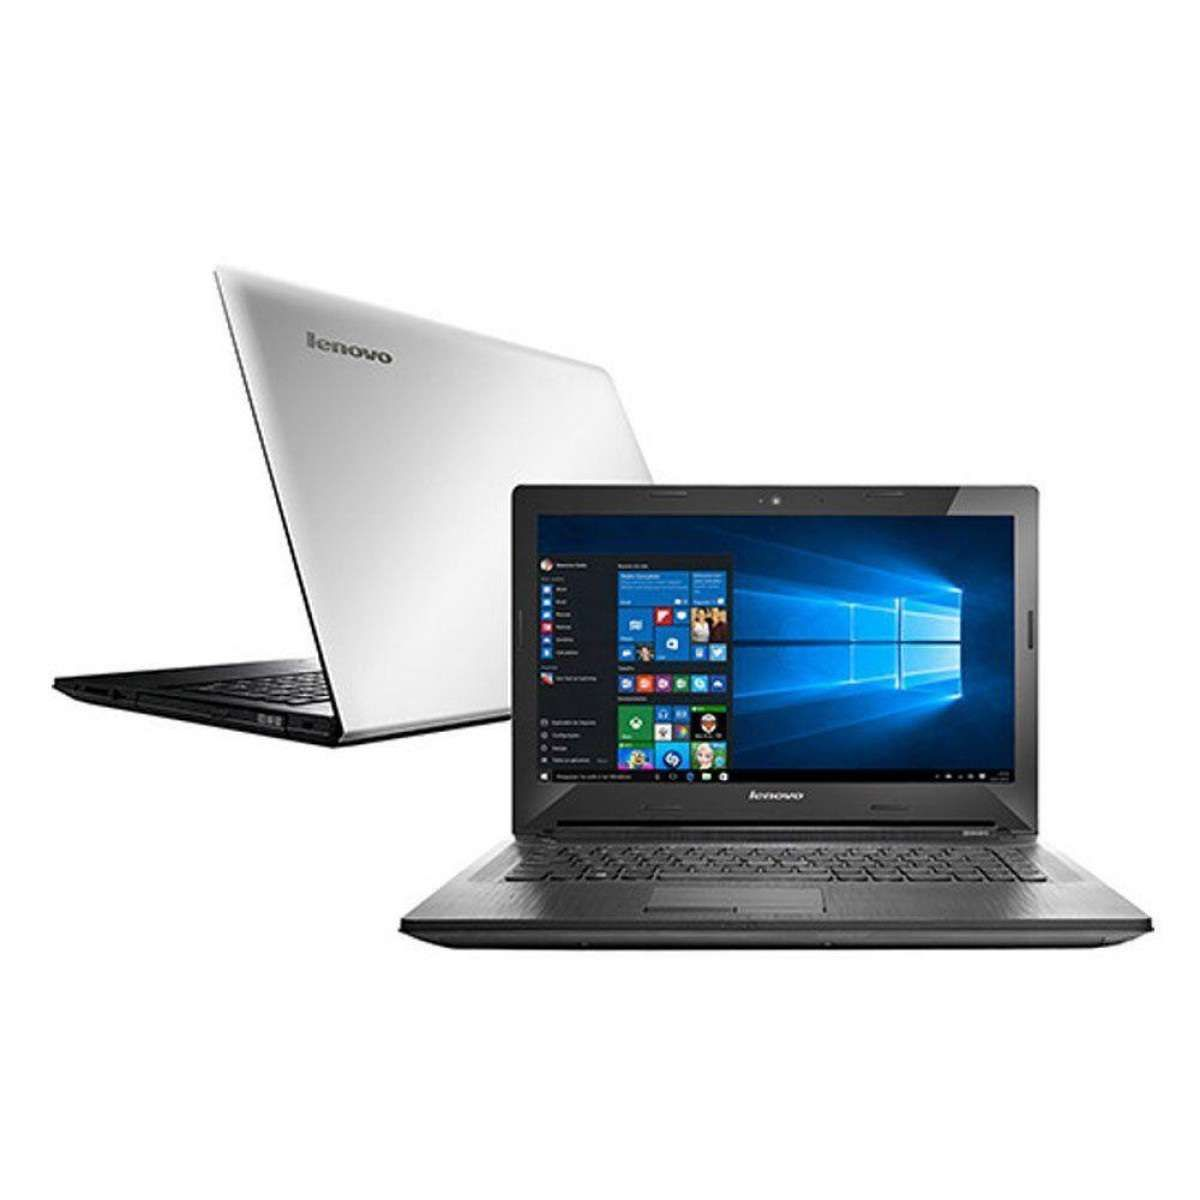 Notebook Lenovo G50-80 Intel Core i3-5005U, 4GB, HD 1TB, HDMI, Tela LED 15.6